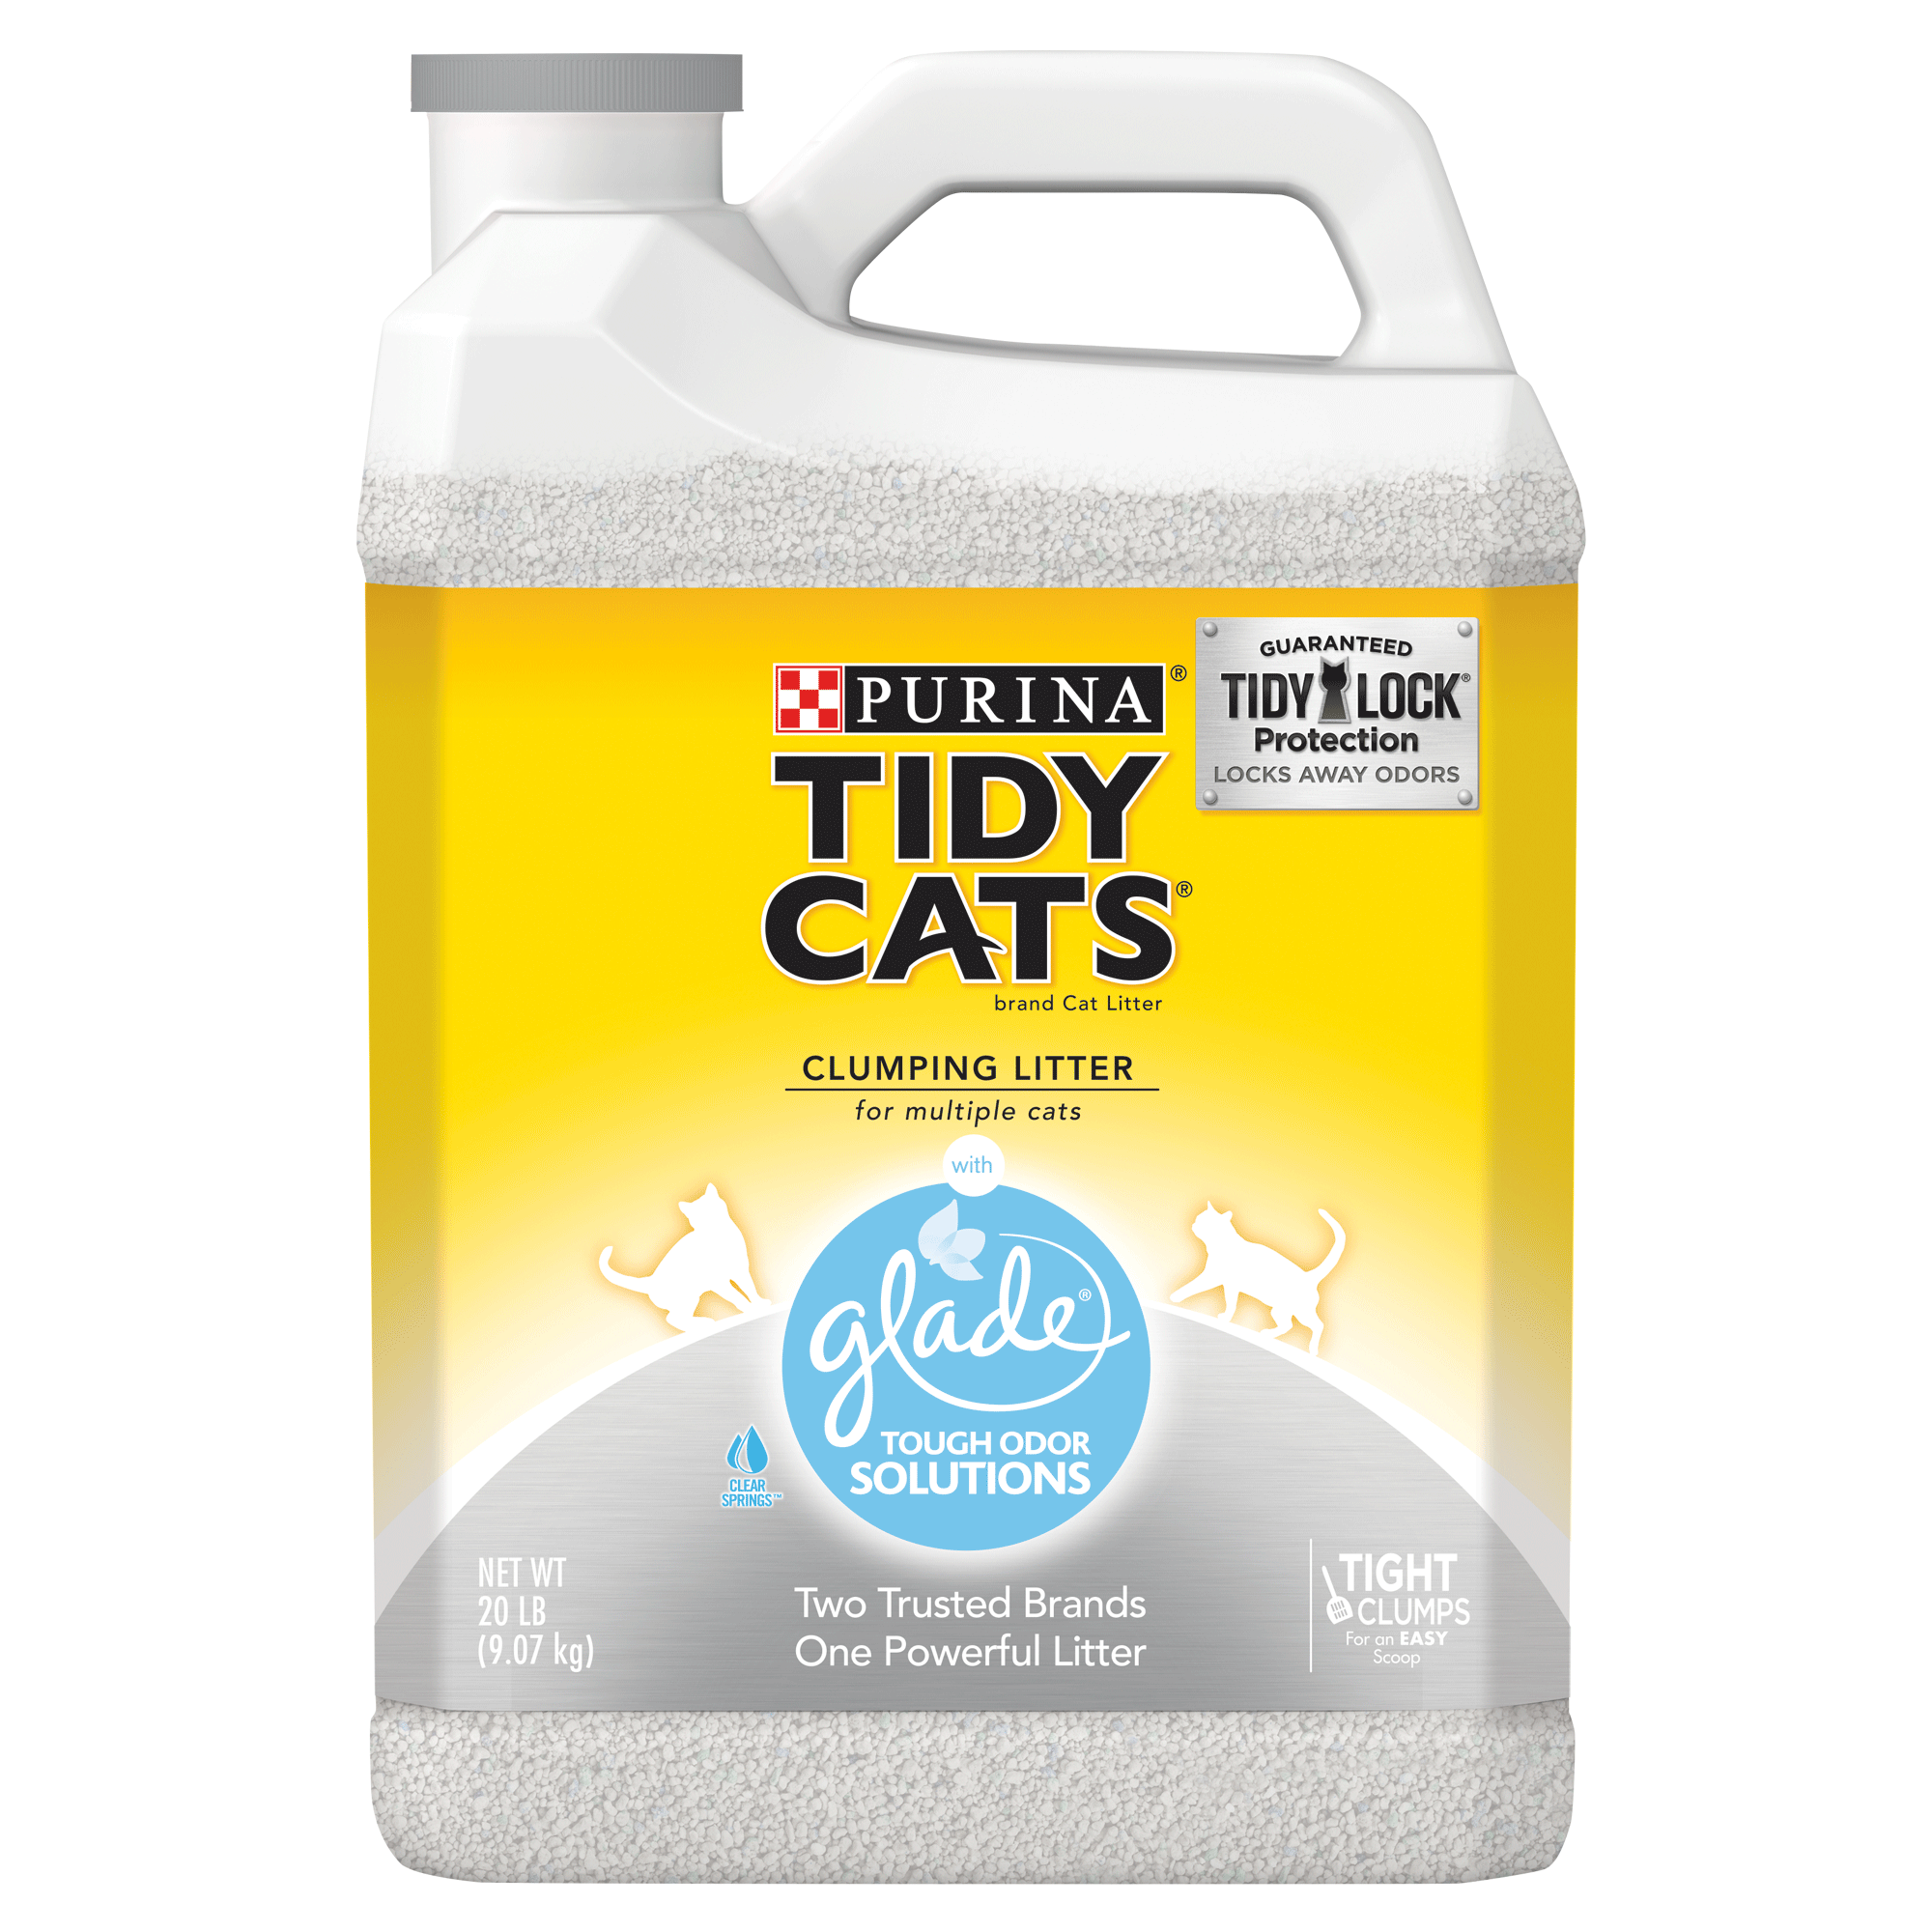 Purina Tidy Cats Glade Tough Odor Solutions Clear Springs Clumping Cat Litter, 20-lb